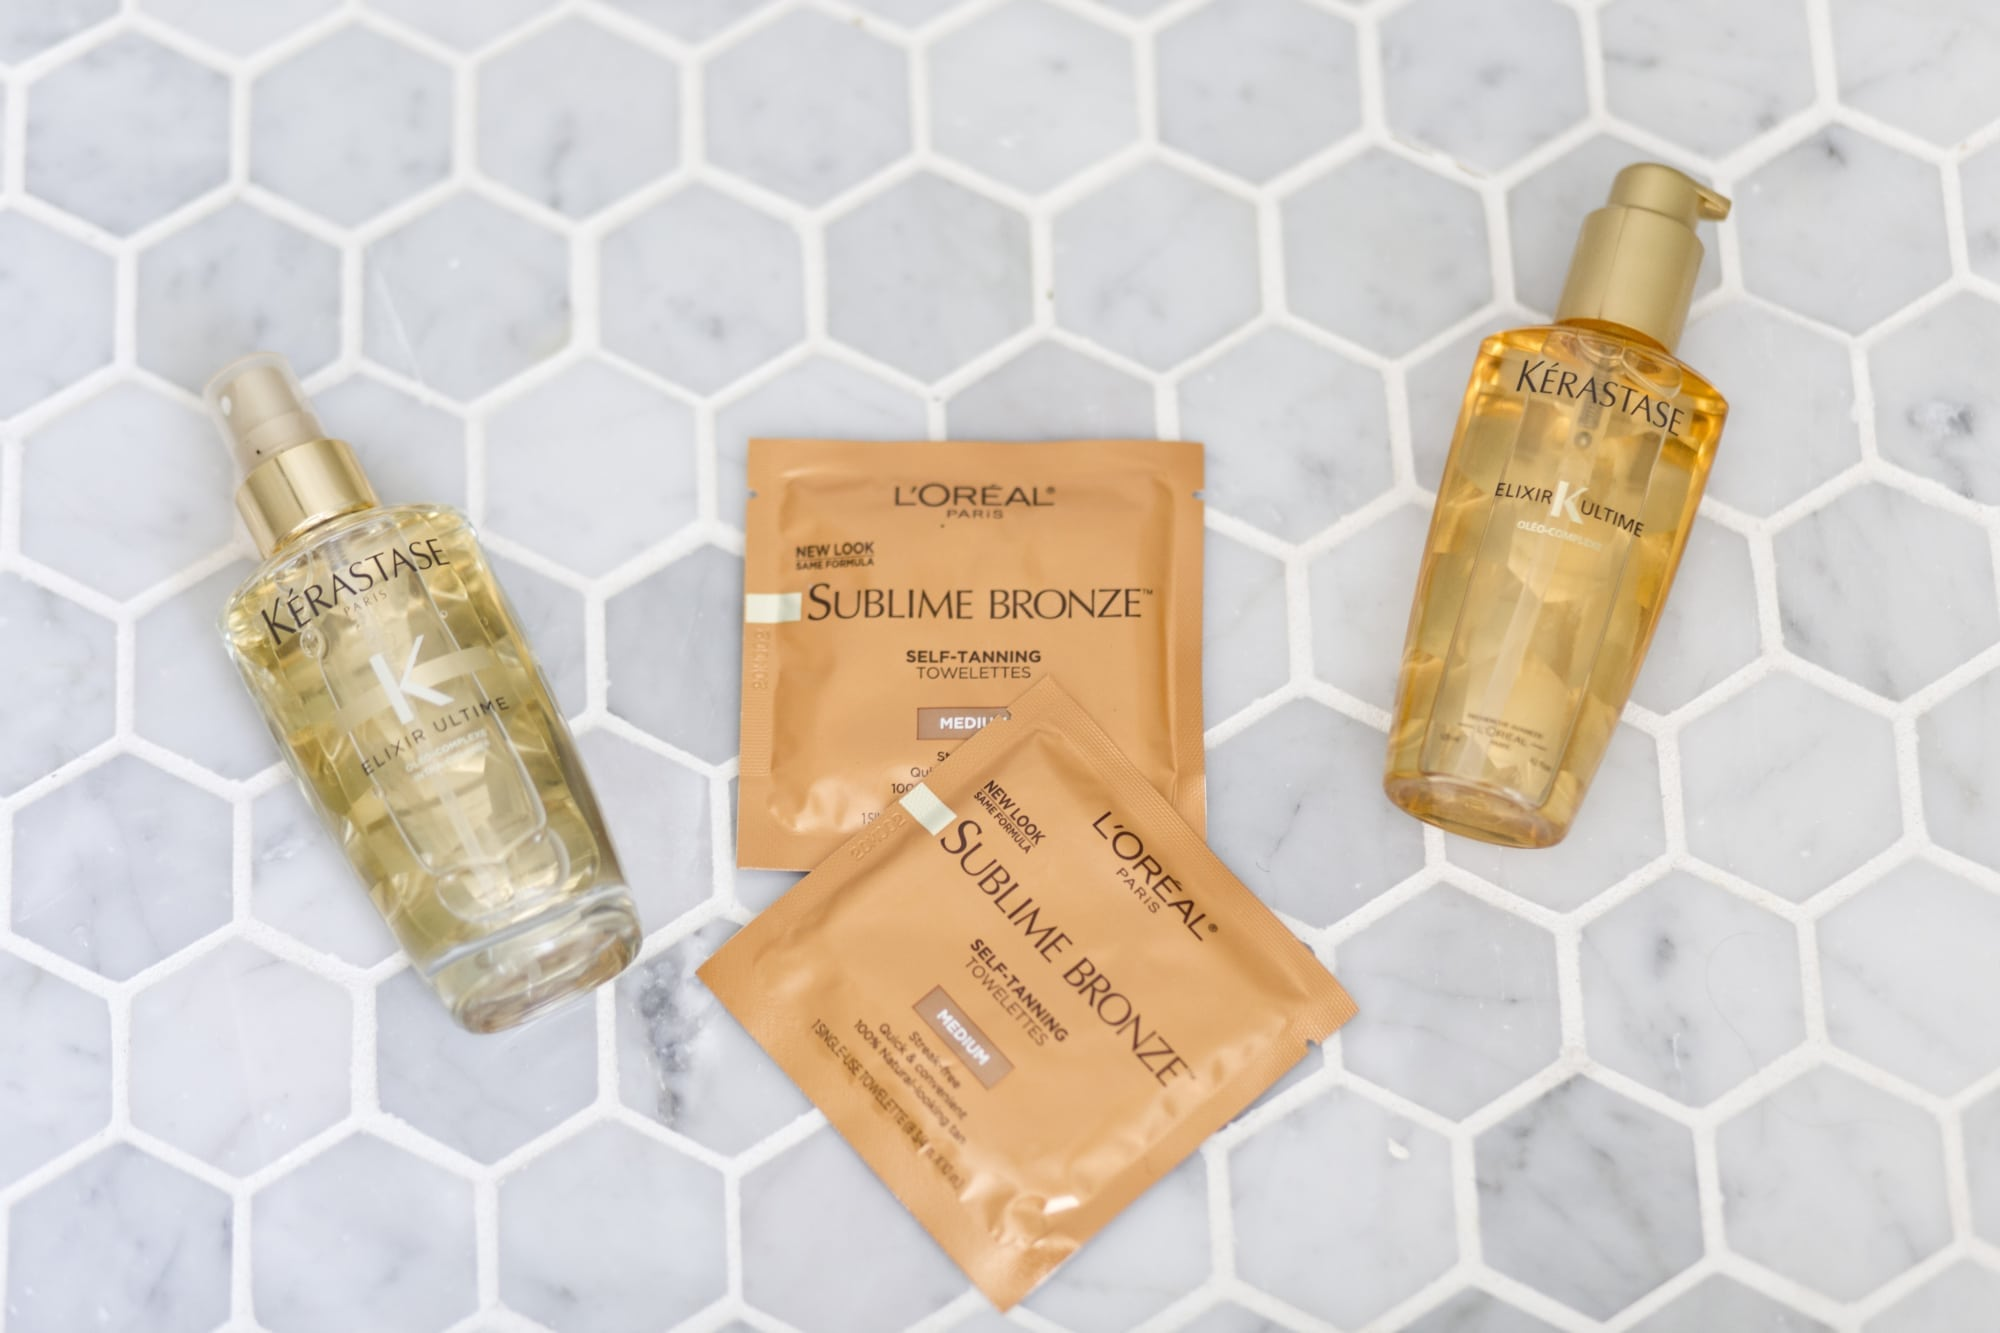 Kerastase Hair Products and Loreal Bronze Wipes